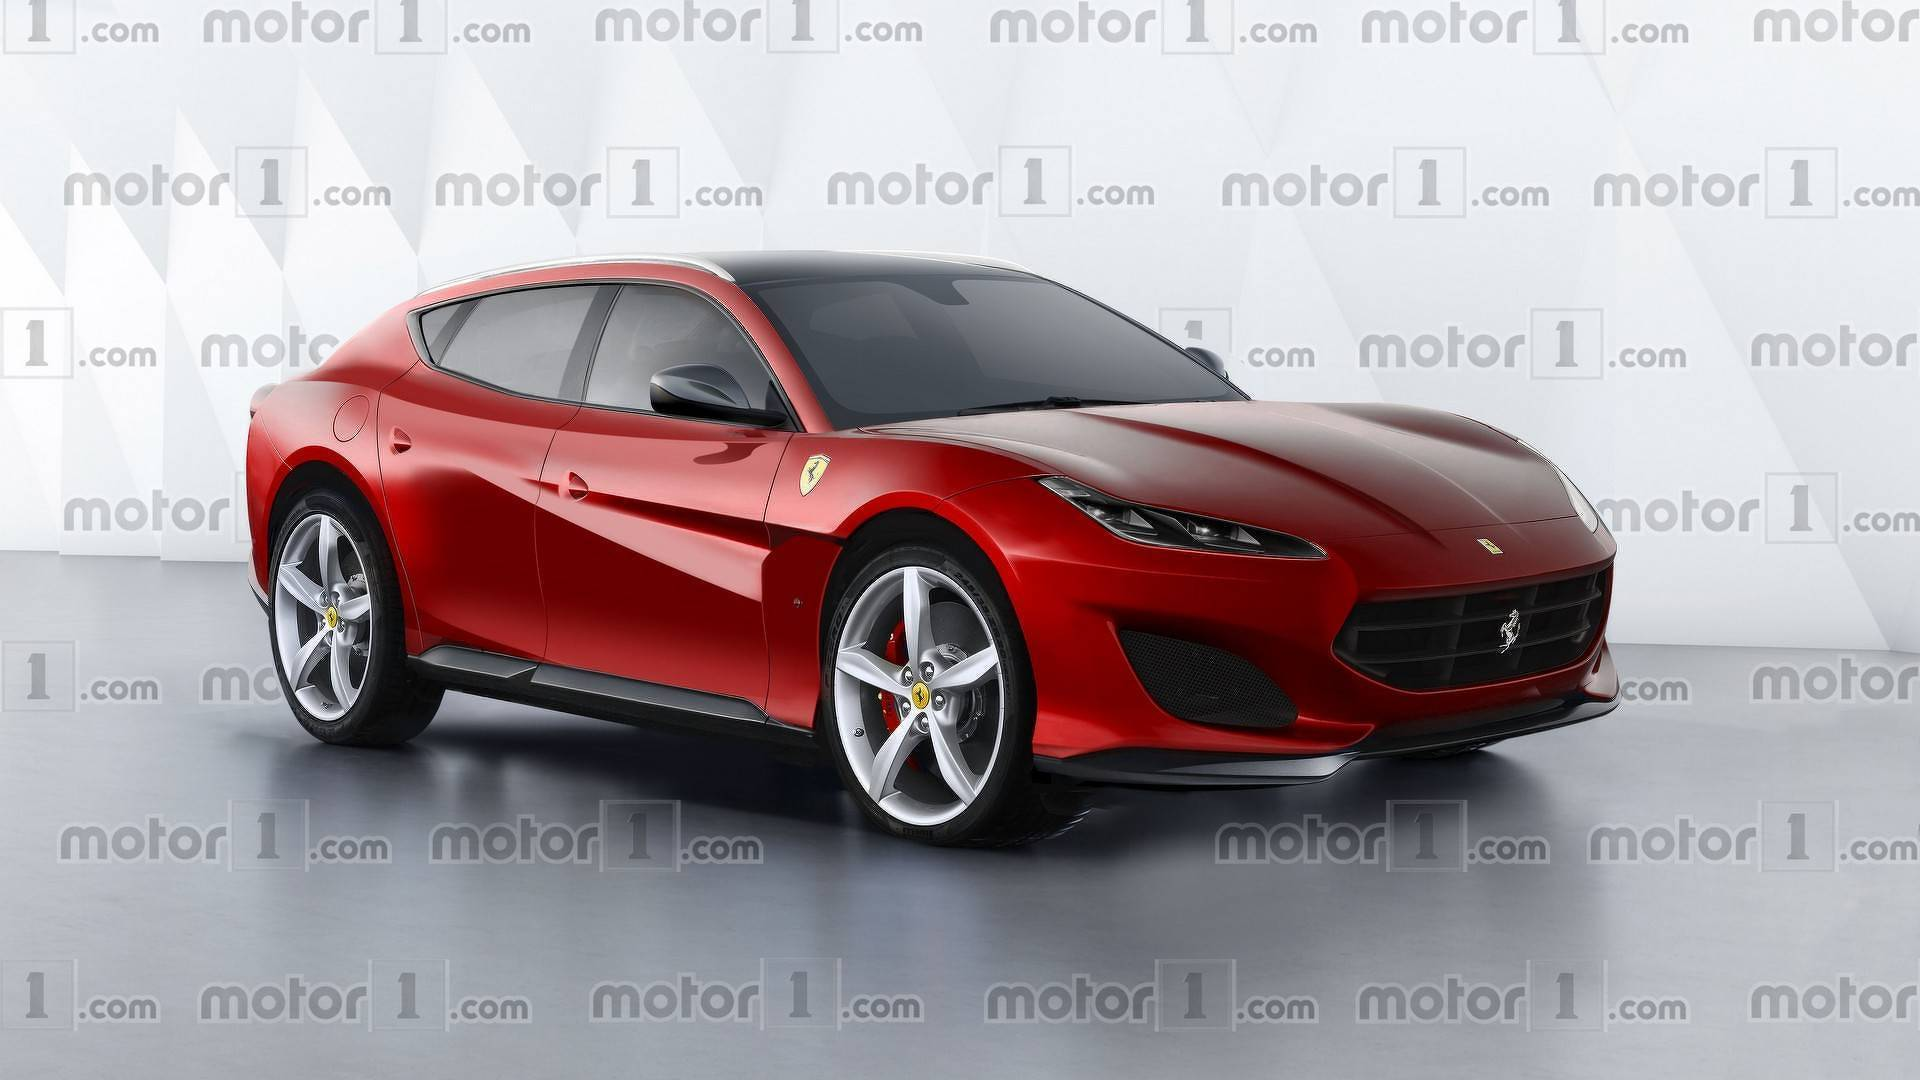 Ferrari SUV Could Arrive Ahead Of Schedule, Possibly By Late